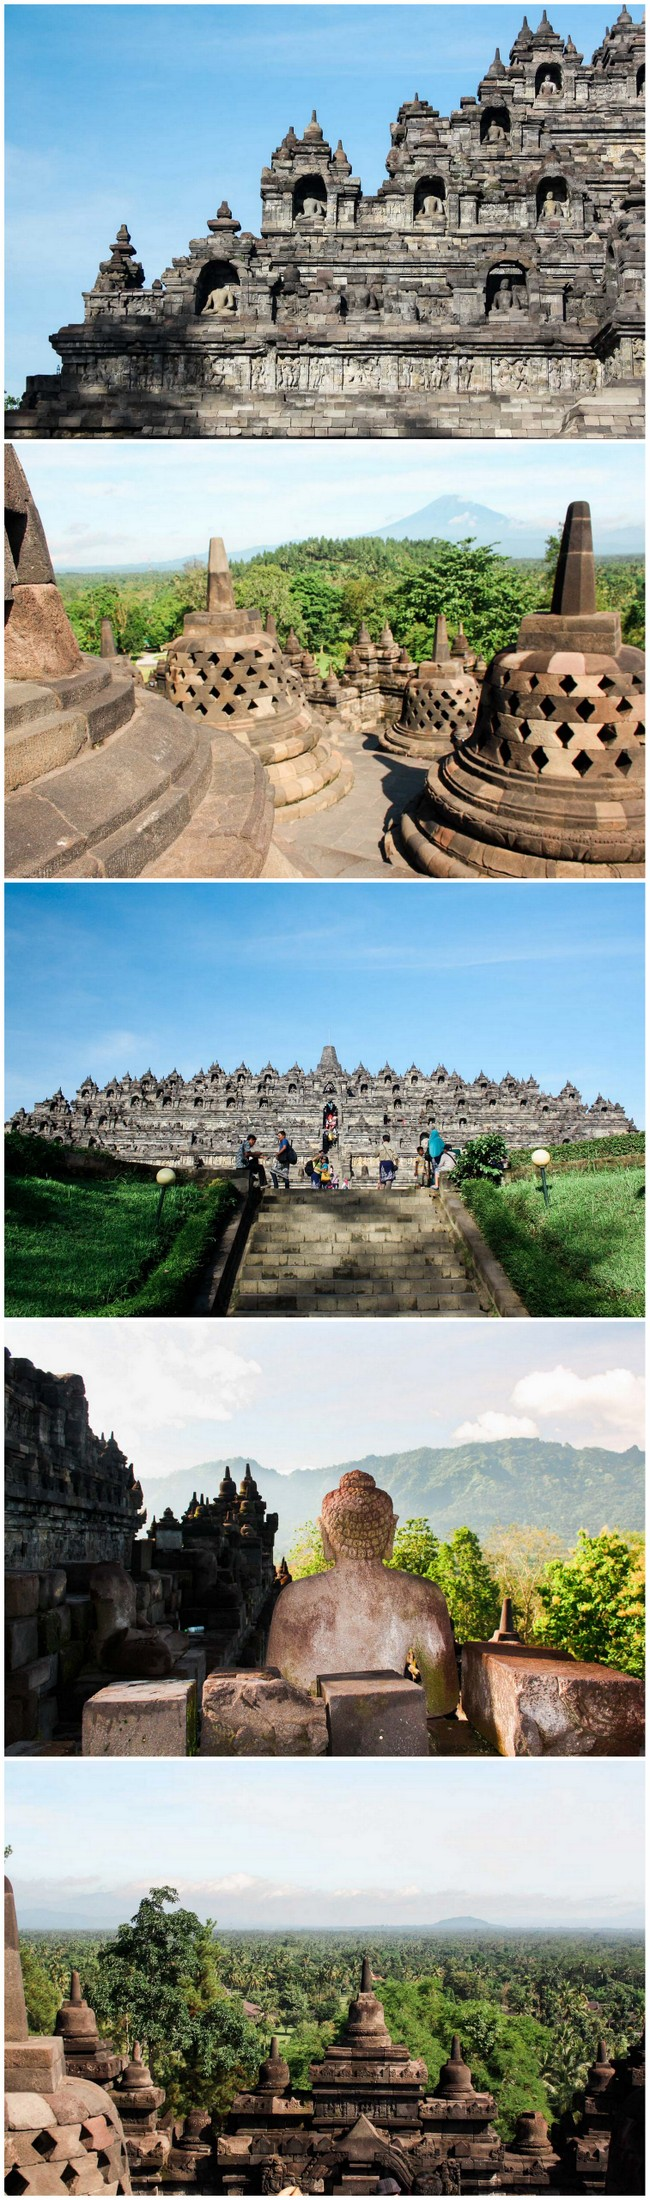 Borobudur is the world's largest buddhist temple. A magnificent UNESCO pilgrimage site, it has 500+ buddha statues, stupas and 2000 ancient bas-relief carvings from the 9th century. Here's how to visit: http://www.swoontastic.com/borobudur-largest-buddhist-temple-java-indonesia/